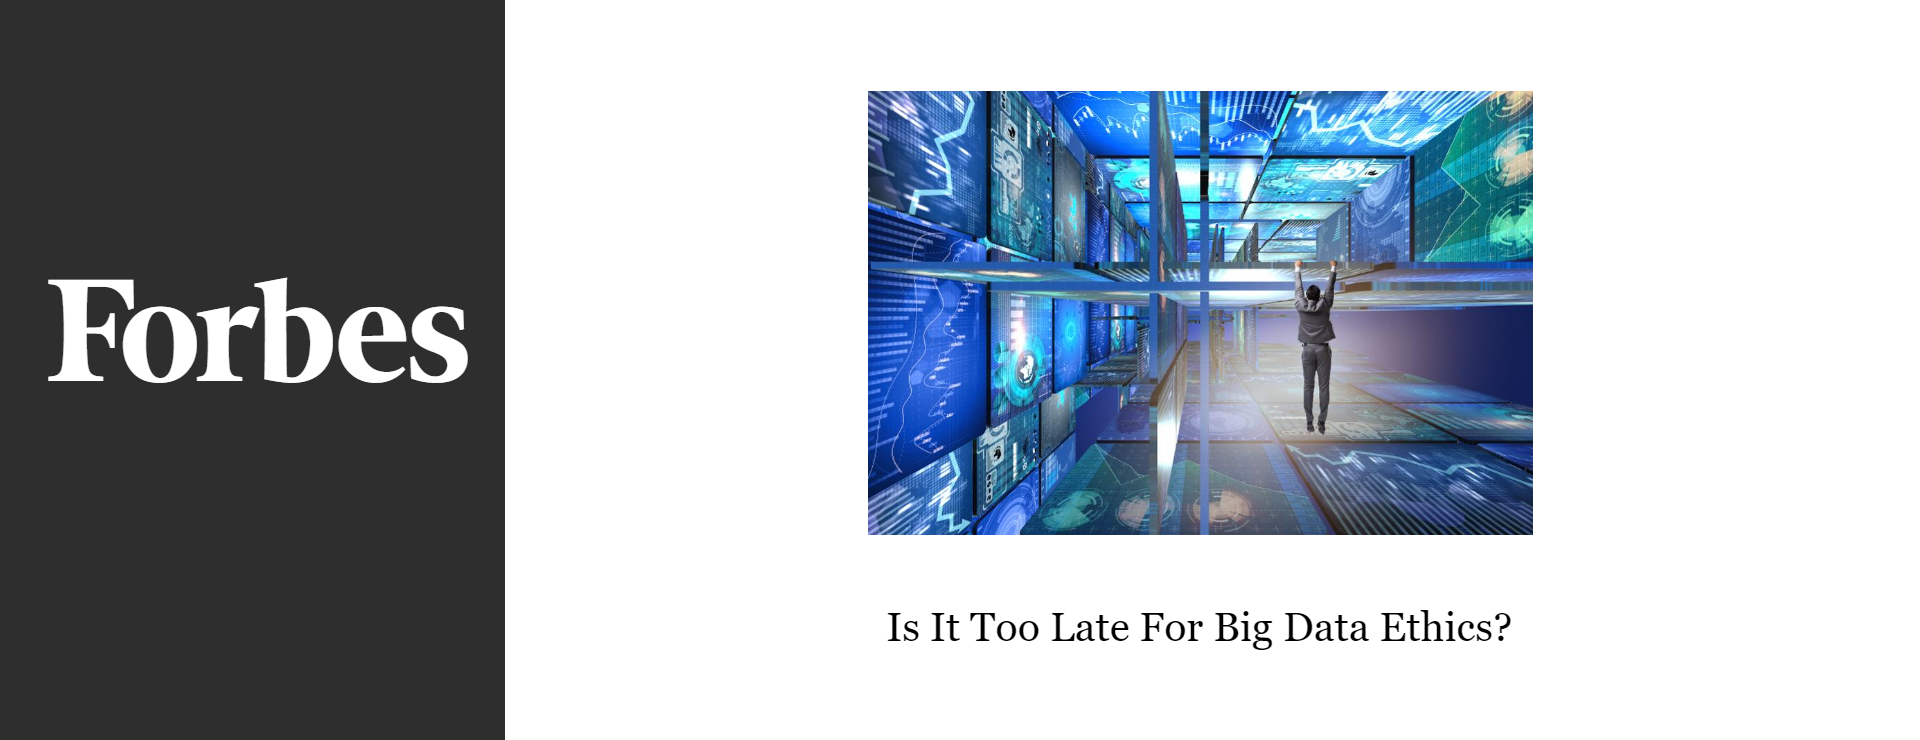 is it too late for big data ethics?